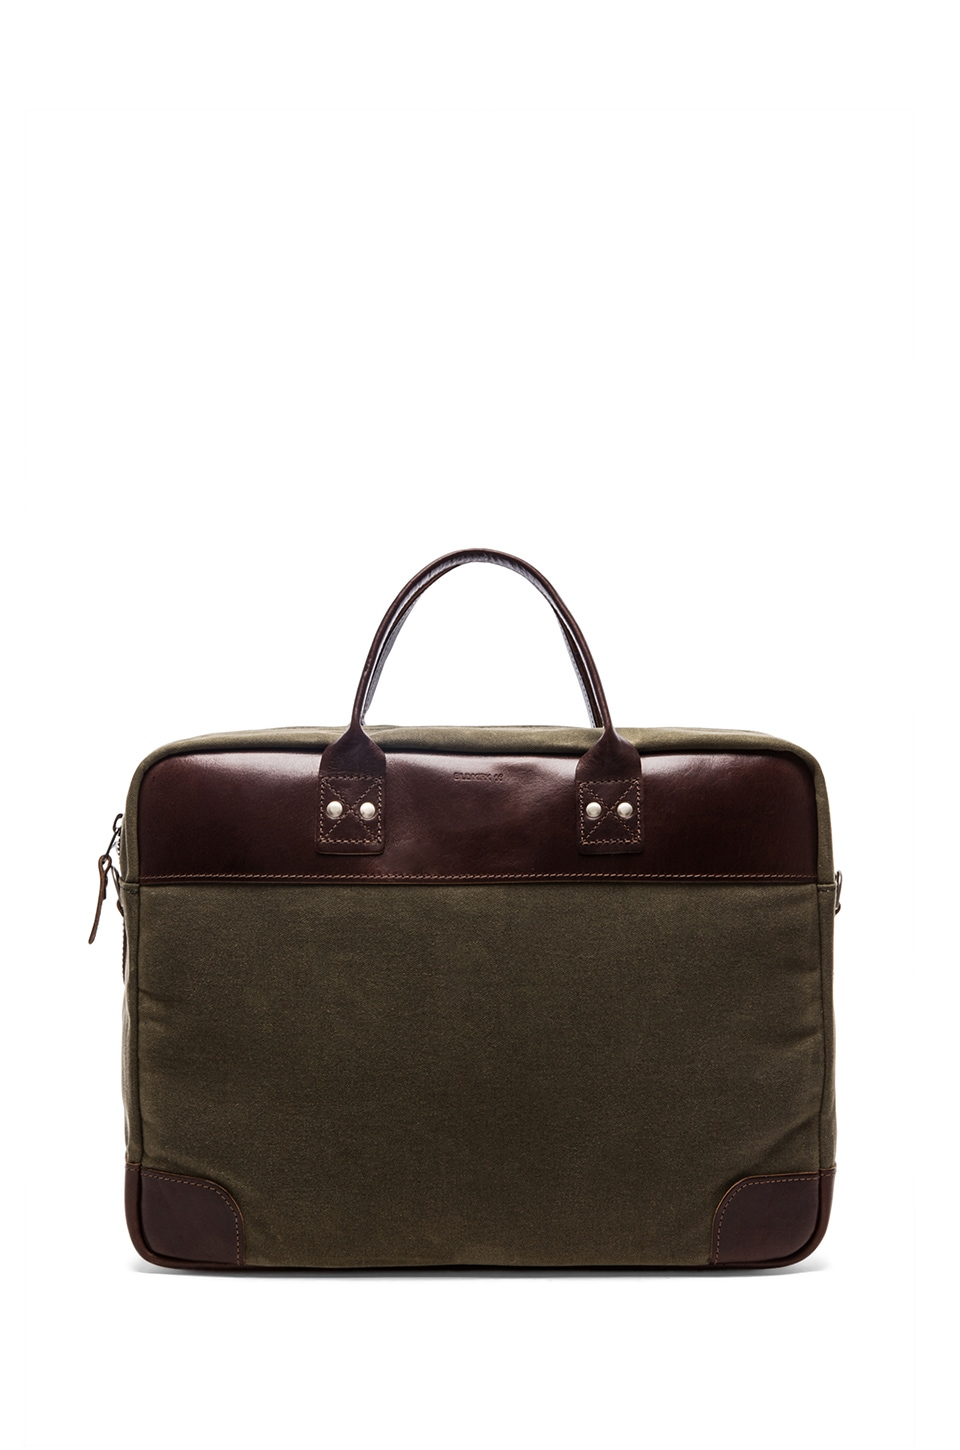 Billykirk No. 300 Padded Briefcase in Olive Wax & Brown